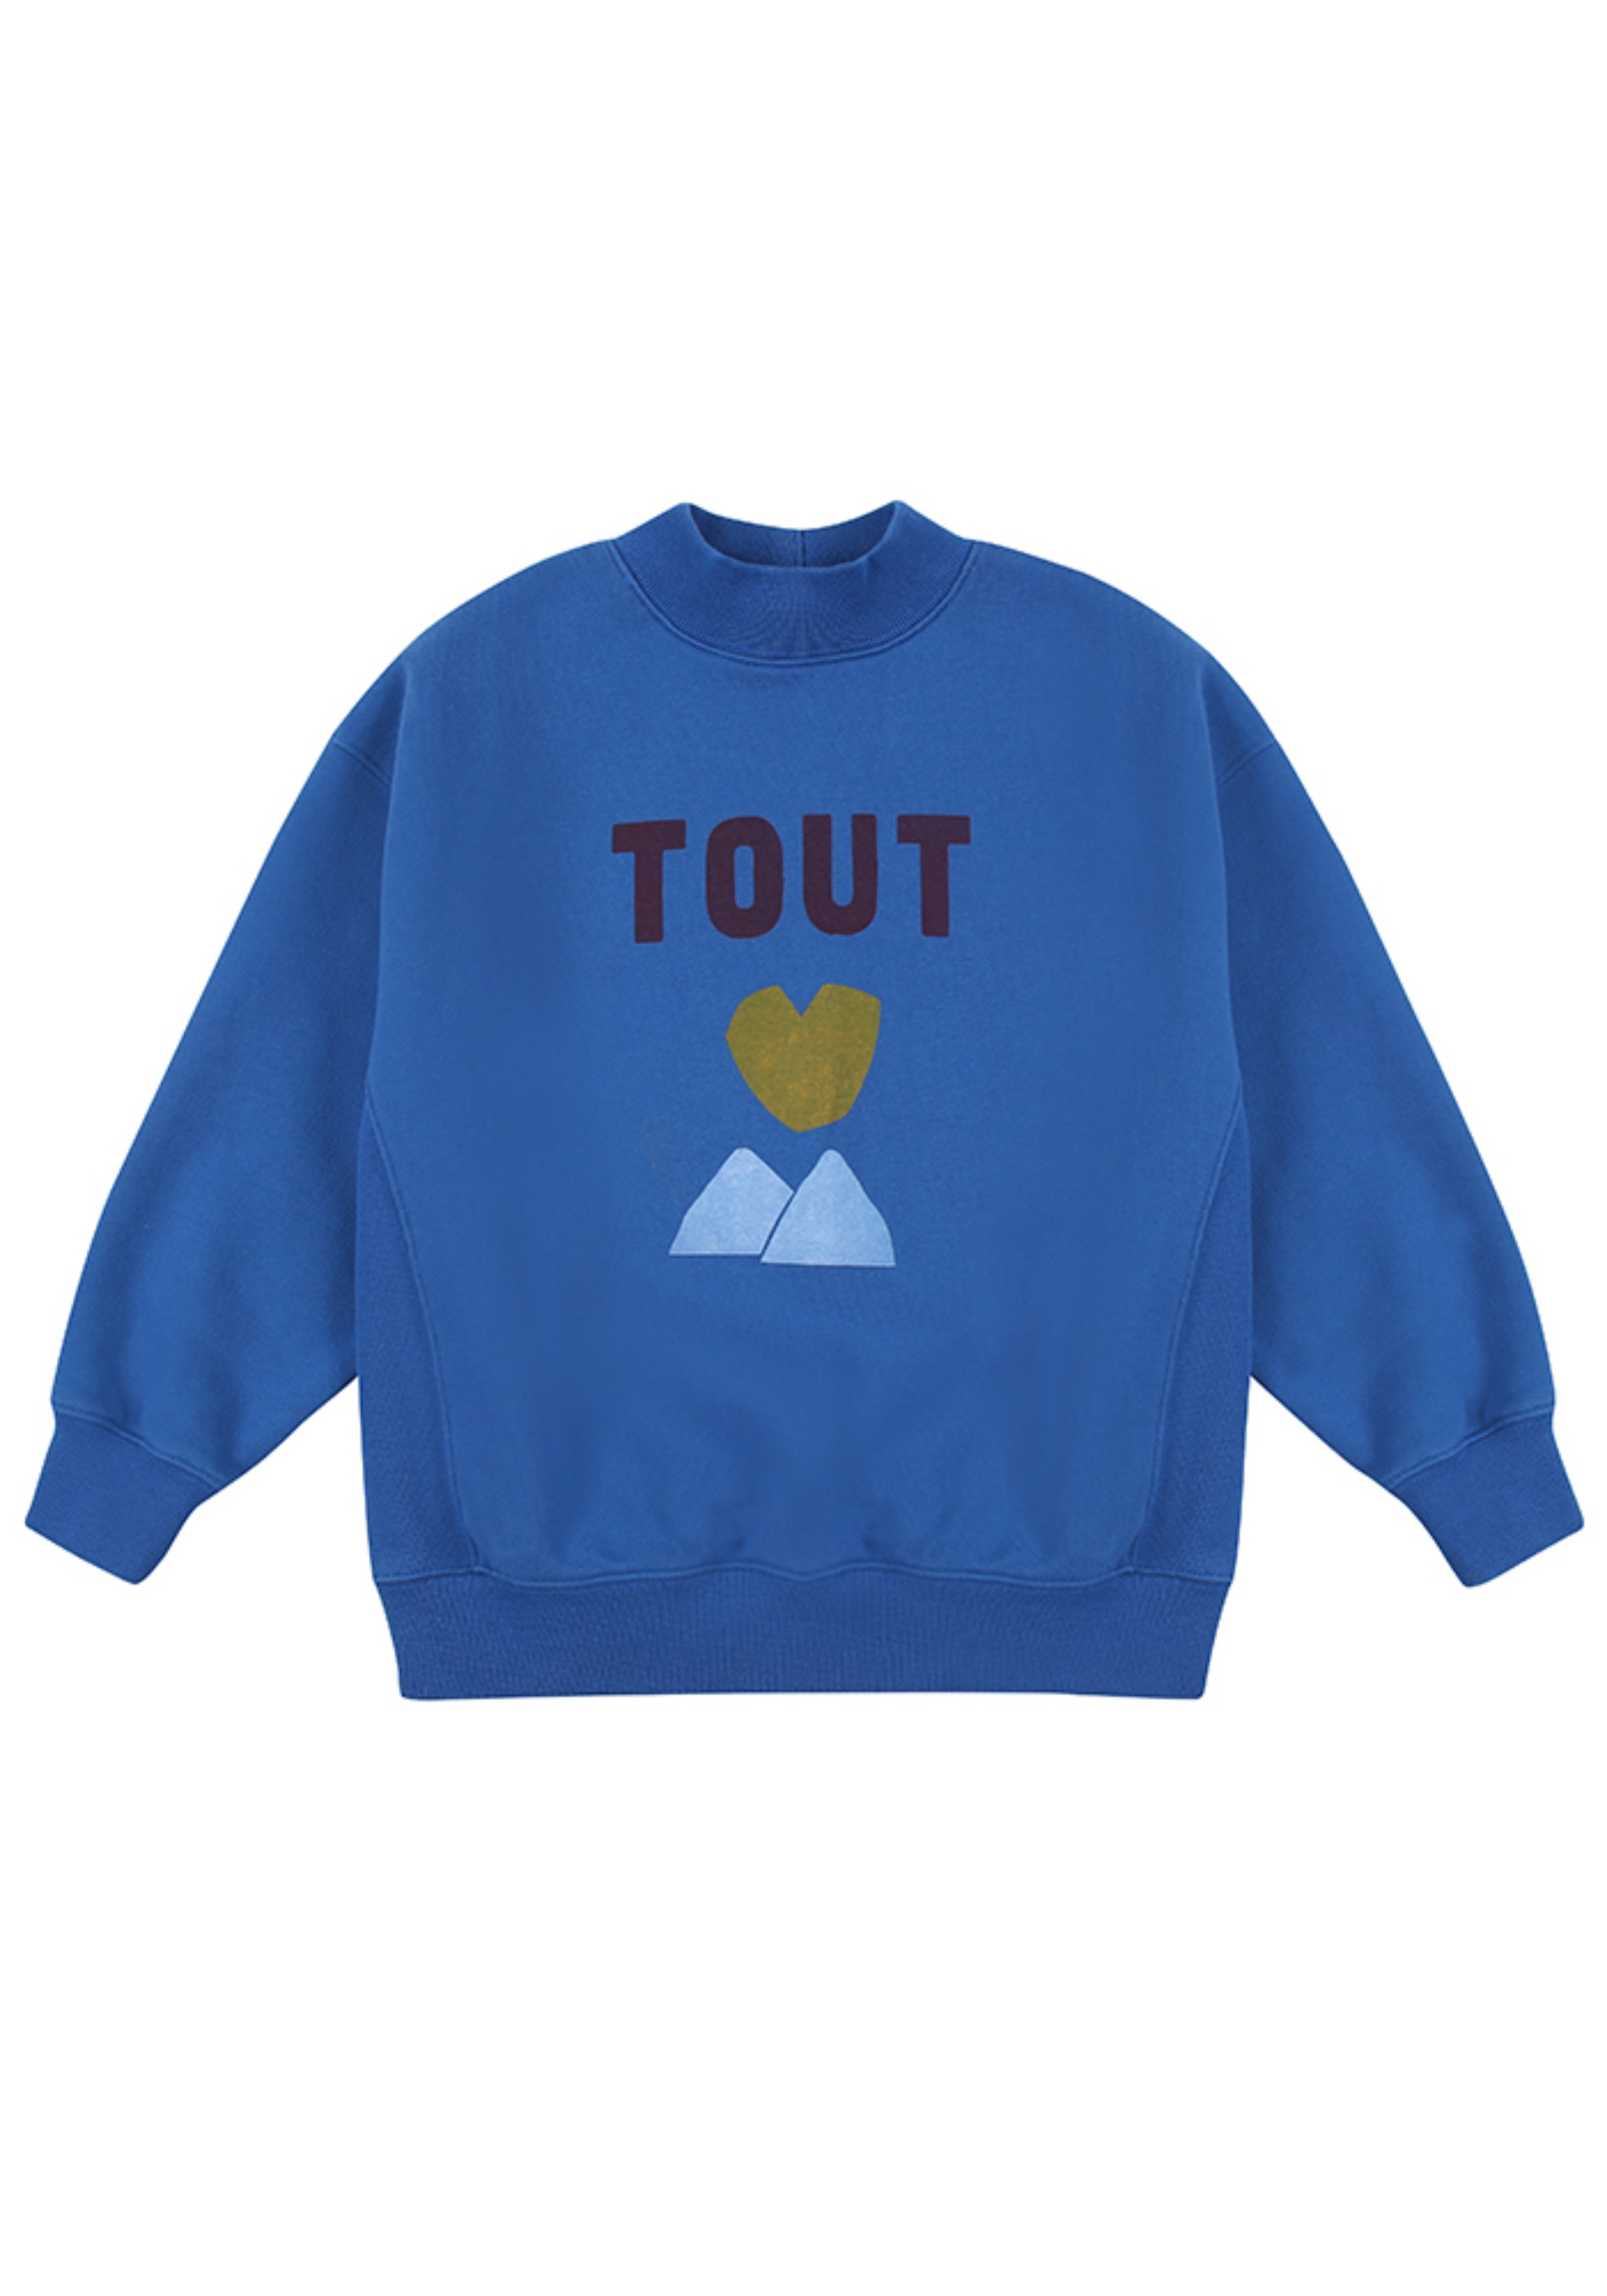 TOUT TURTLENECK SWEATSHIRT_Baby#2